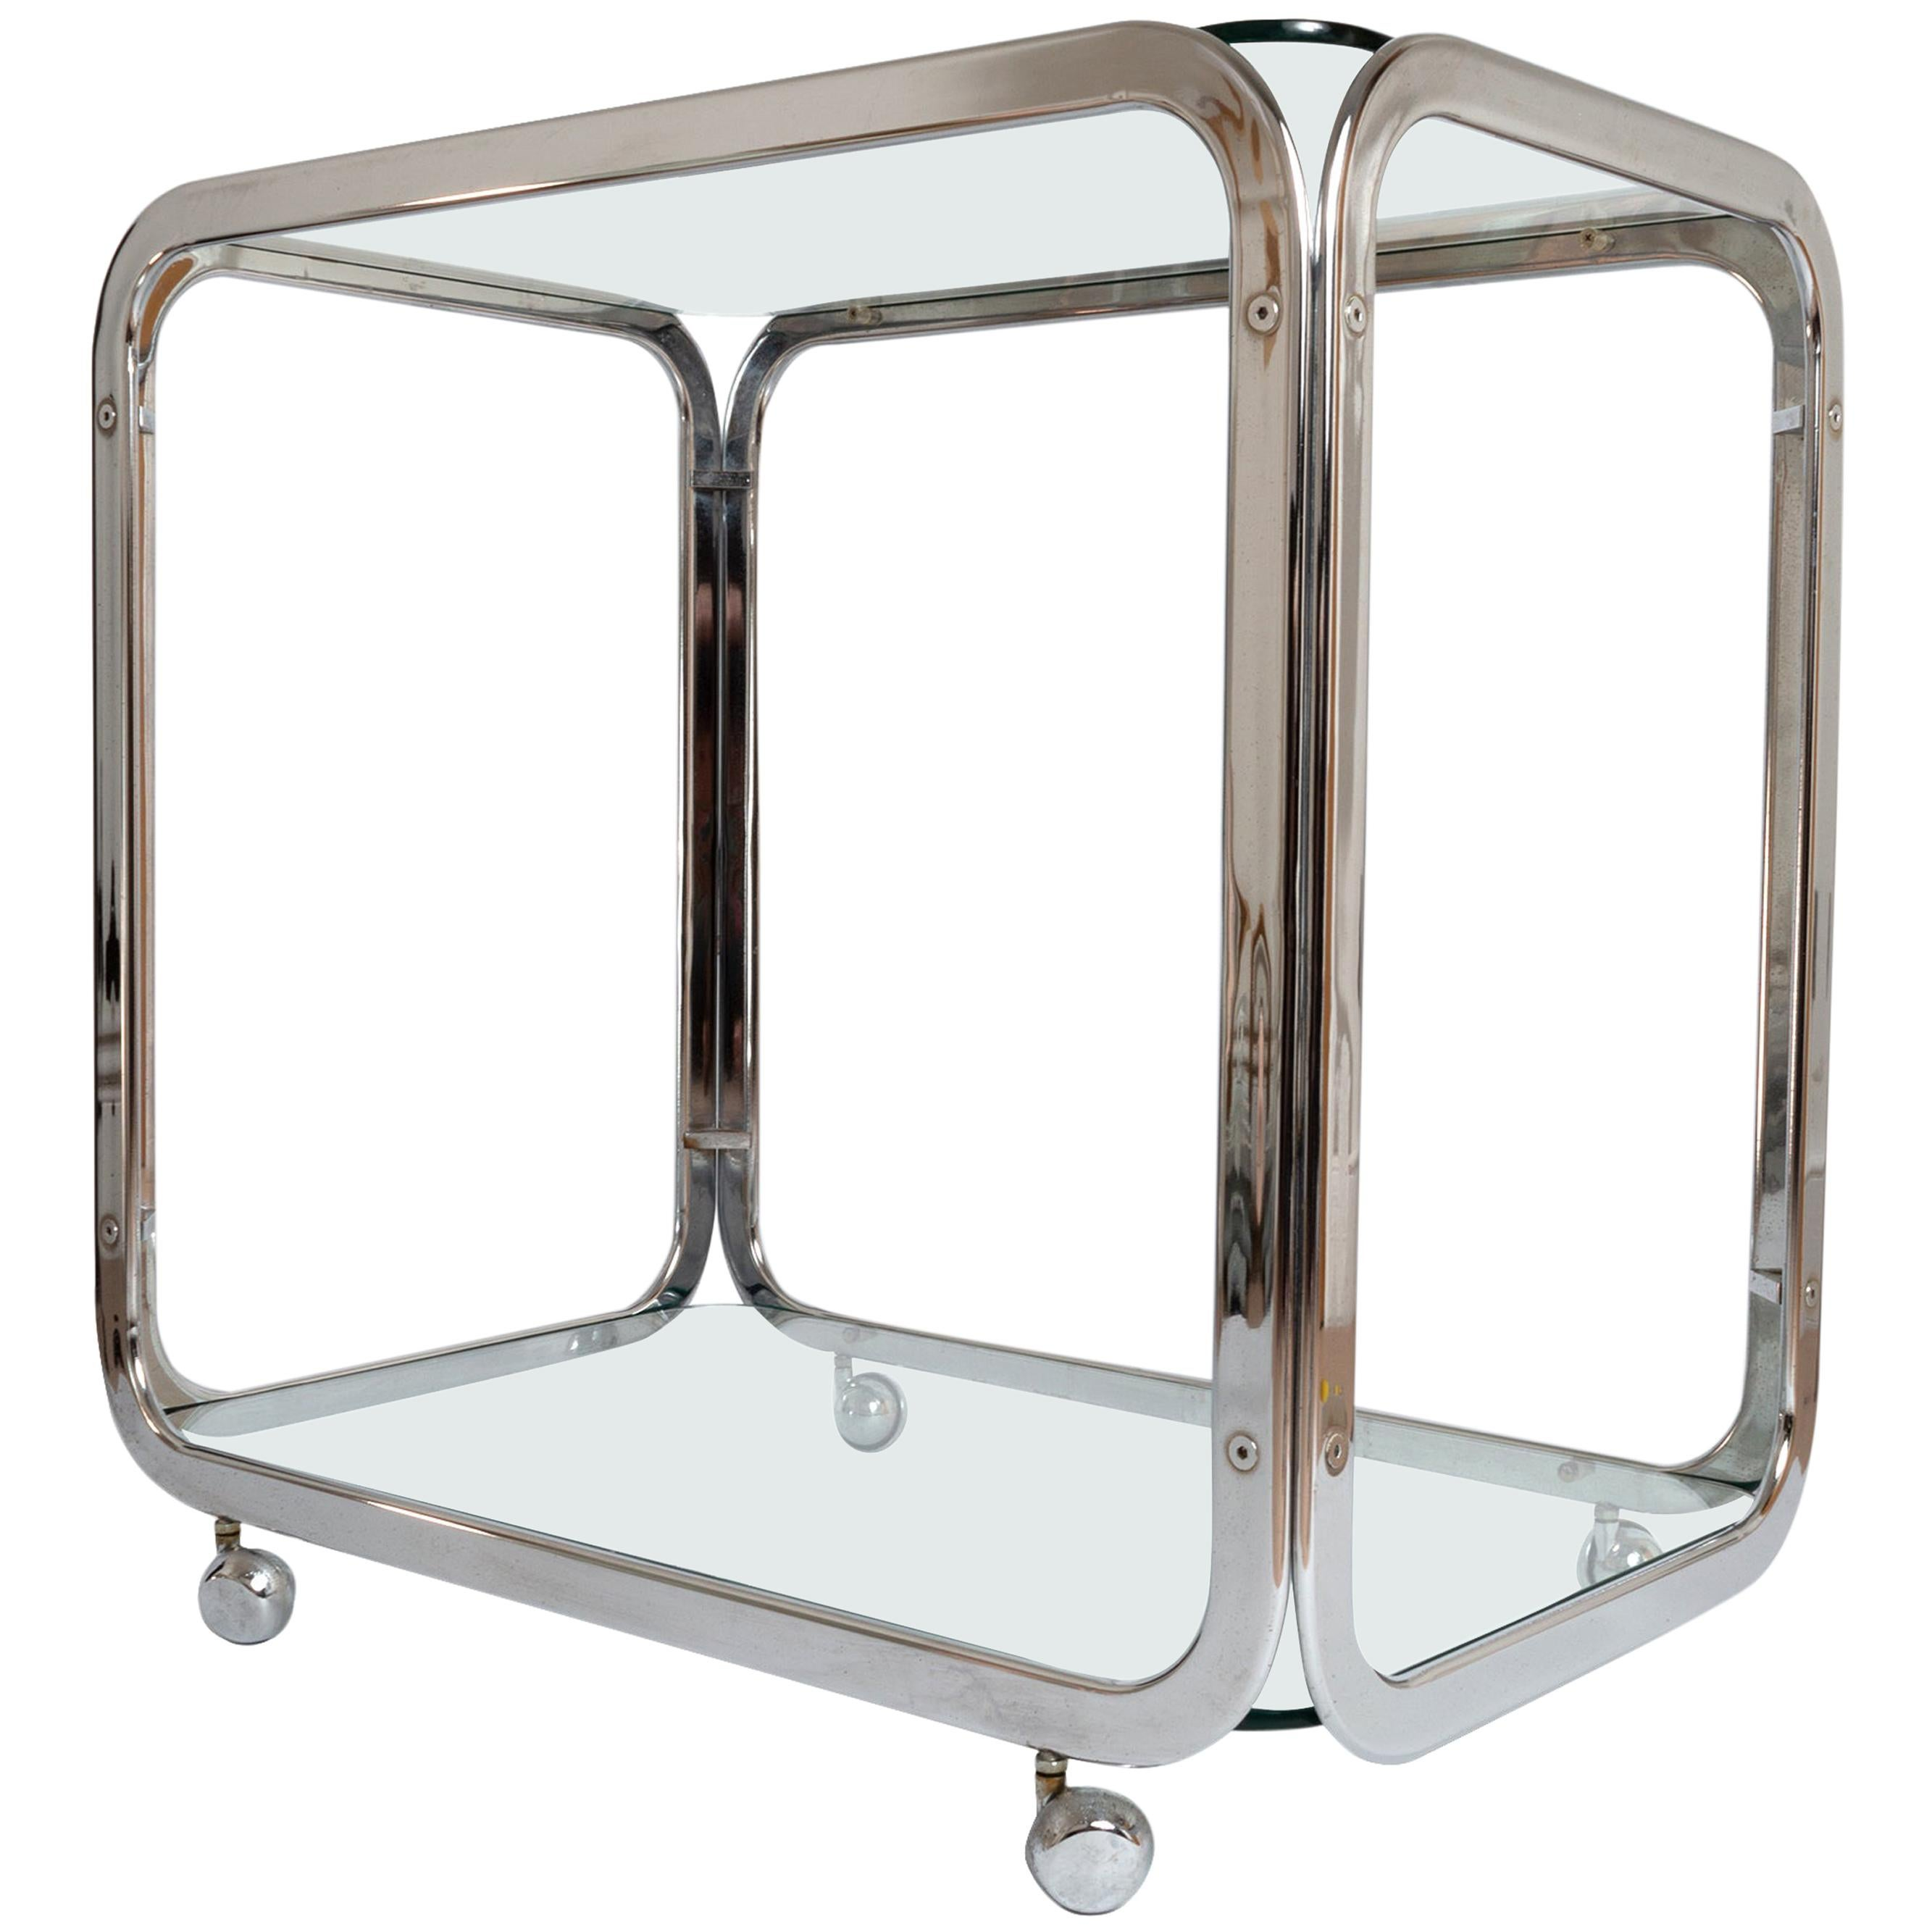 Midcentury Chrome-Plated Bar Cart Drinks Trolley, Italy, circa 1970